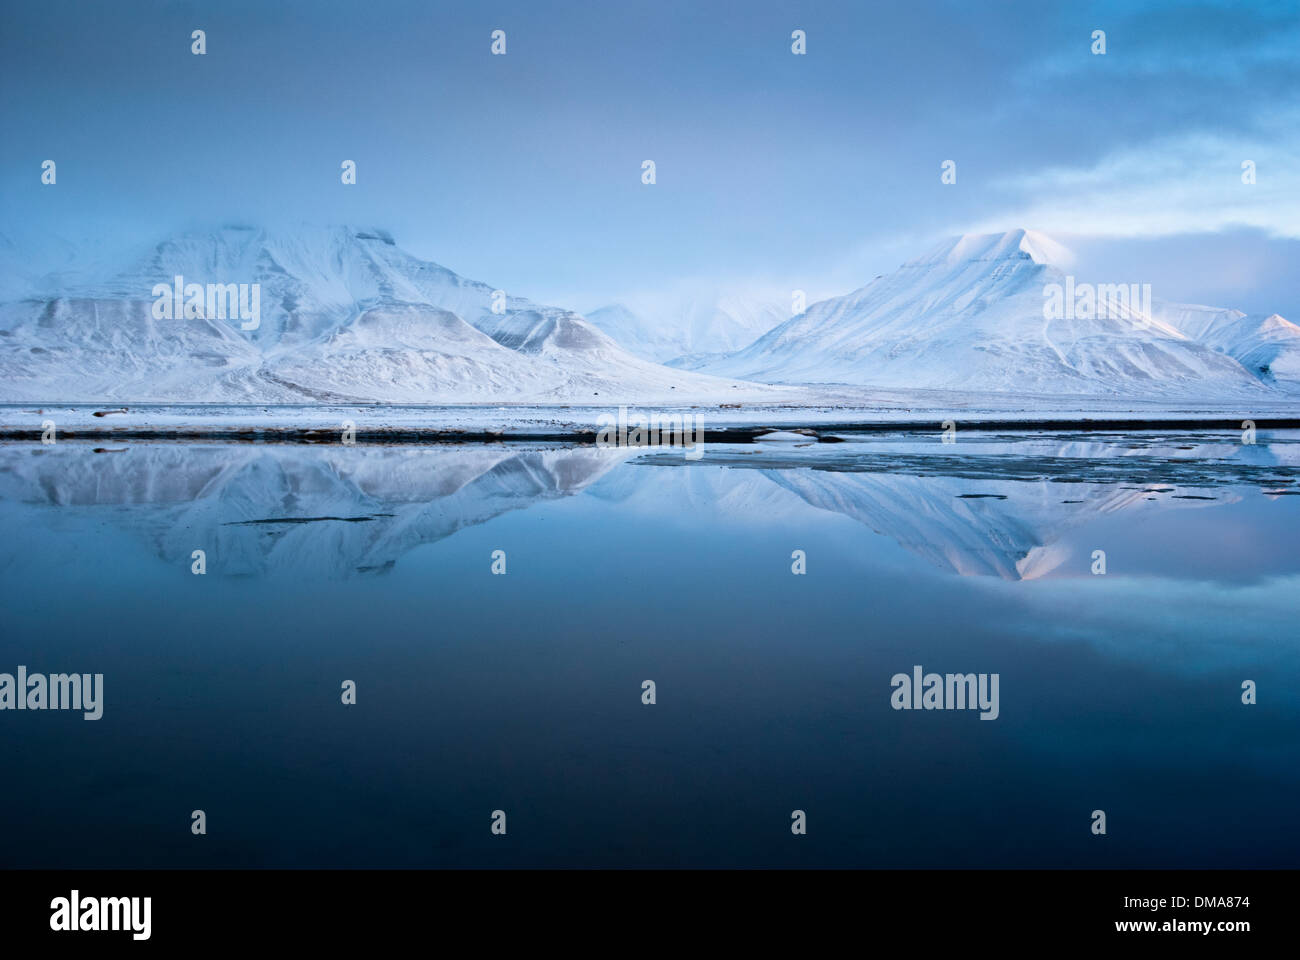 Massif of Adventdalen and Isfjorden at dusk, Spitsbergen, Norway - Stock Image